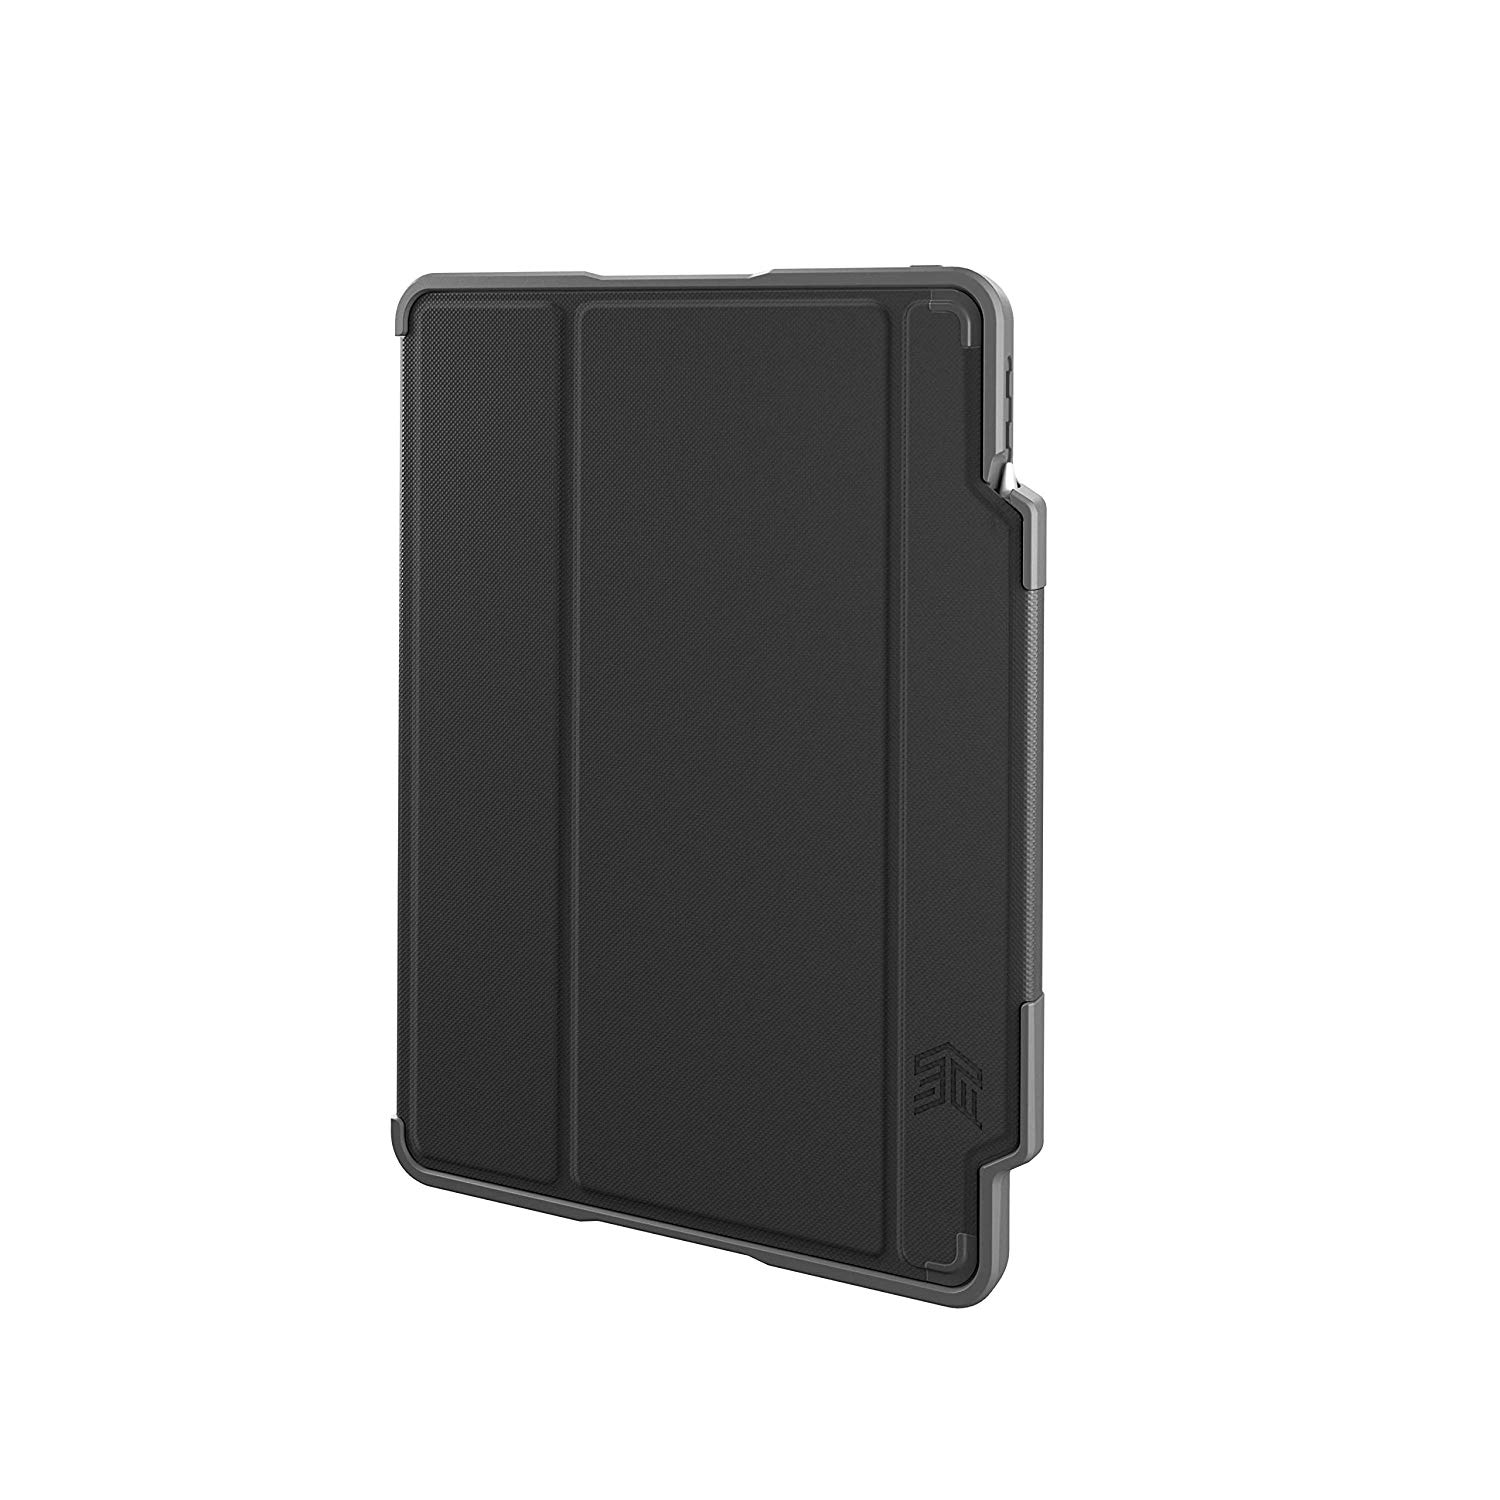 STM Dux Plus Case for iPad Pro 12.9 inch 2018 with Pencil Holder